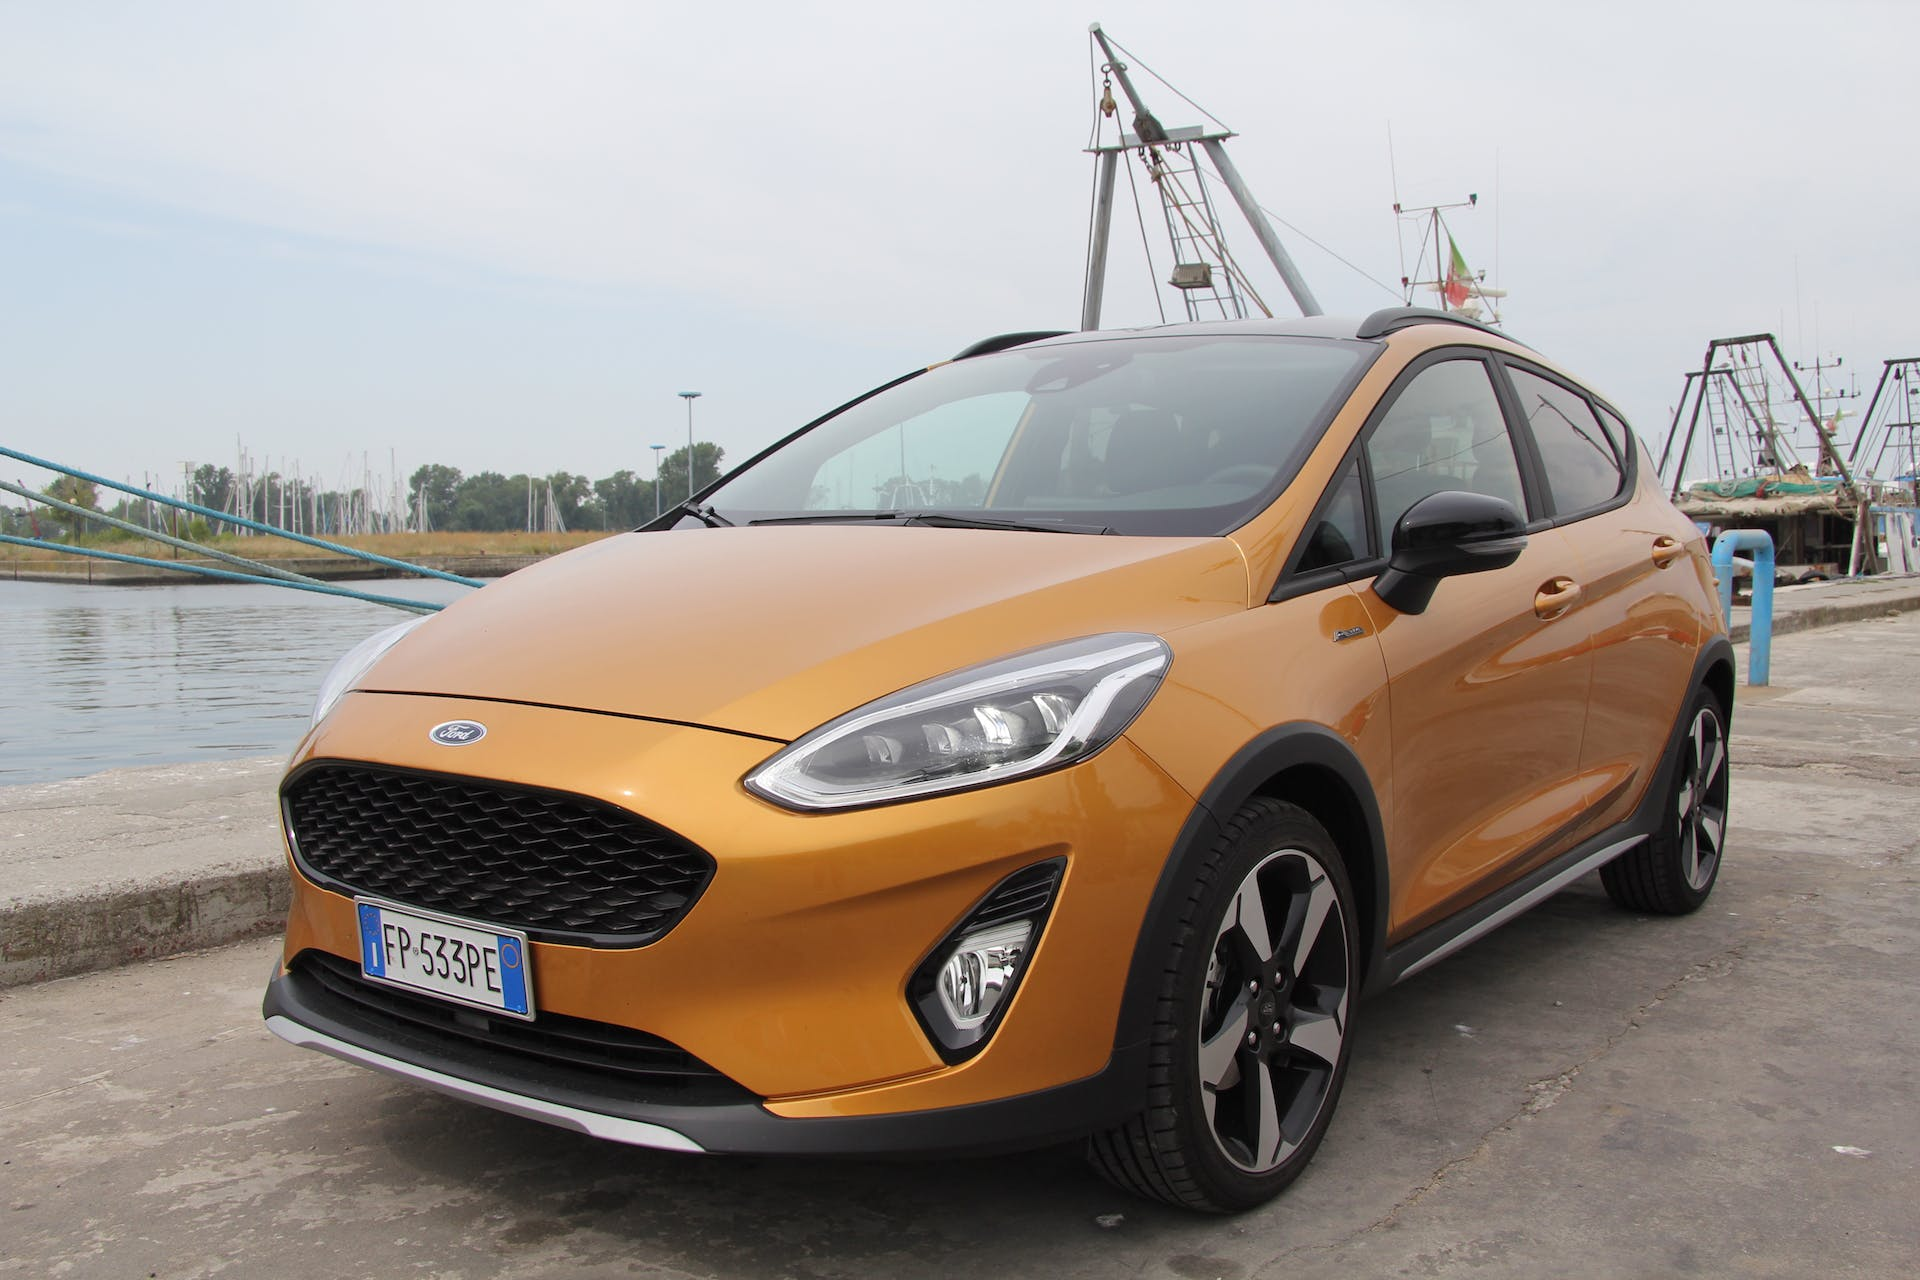 Ford Fiesta Active color terra bruciata vista tre quarti